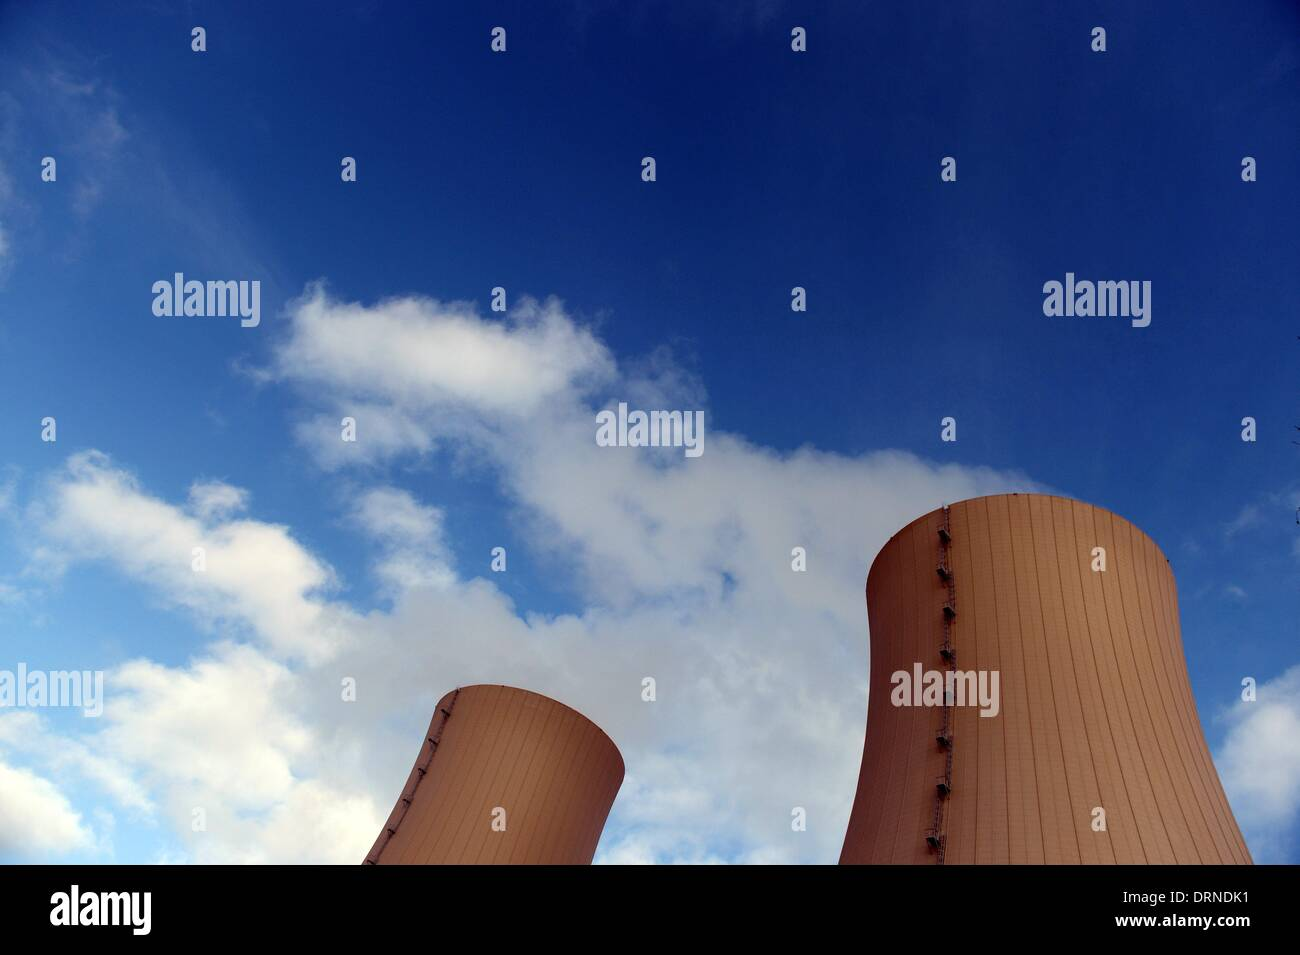 Cooling towers of the nuclear power plant Grohnde in Germany, 28. January 2014. Photo: Frank May - Stock Image